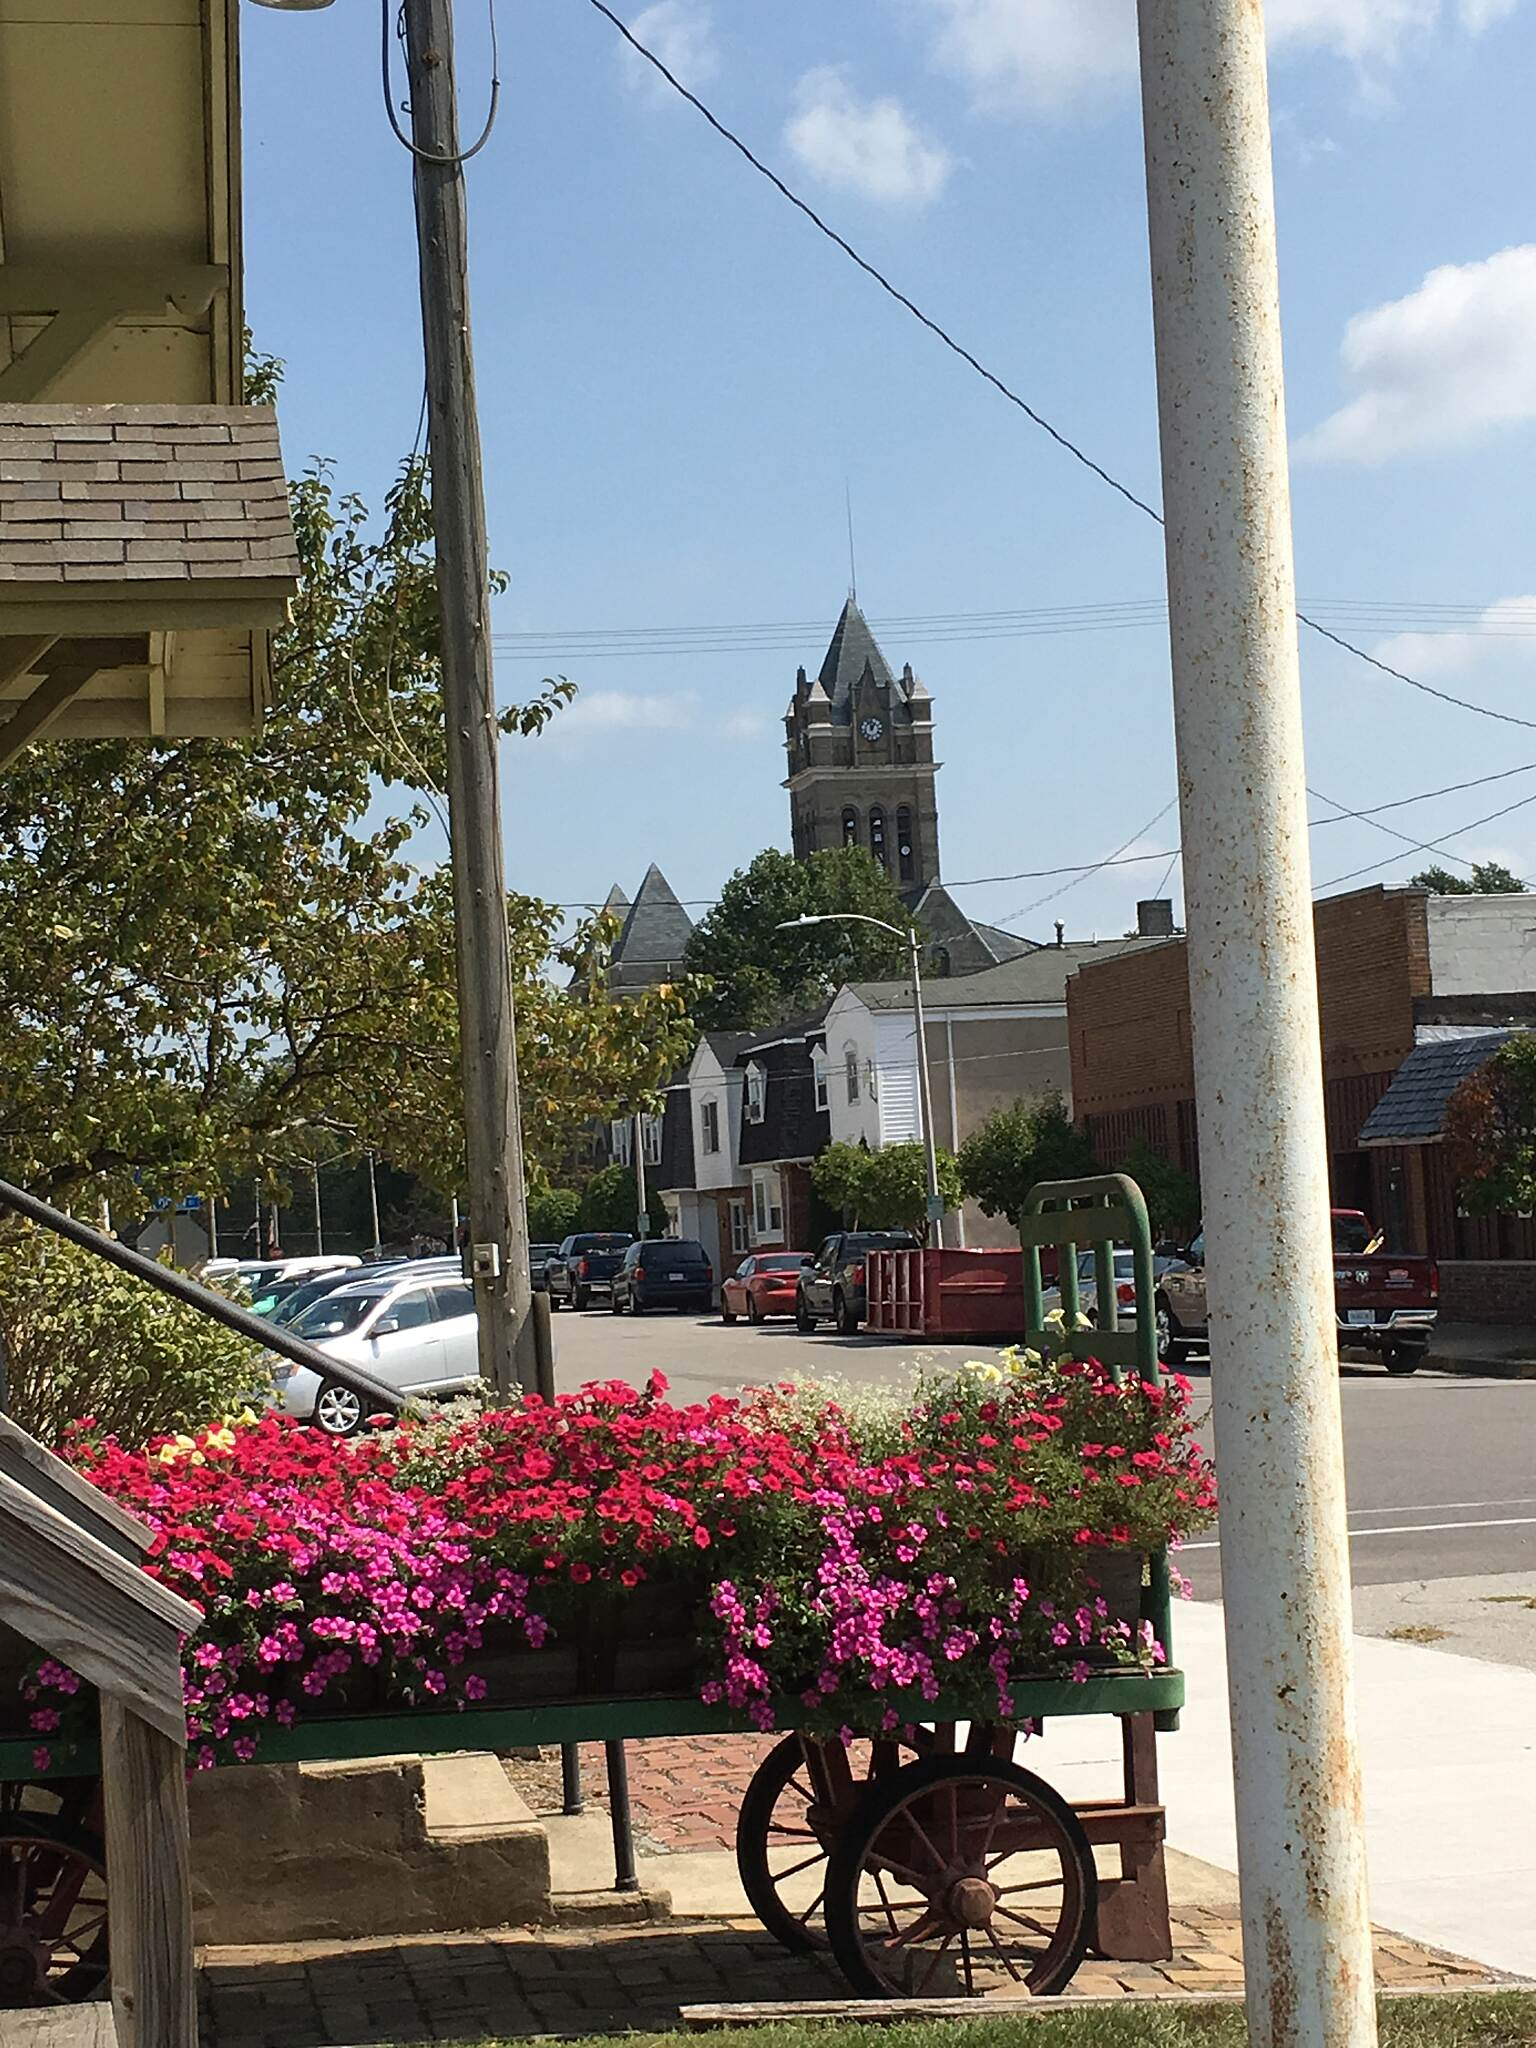 Panhandle Pathway The Courthouse The iconic courthouse in downtown Winamac as seen from the train station.